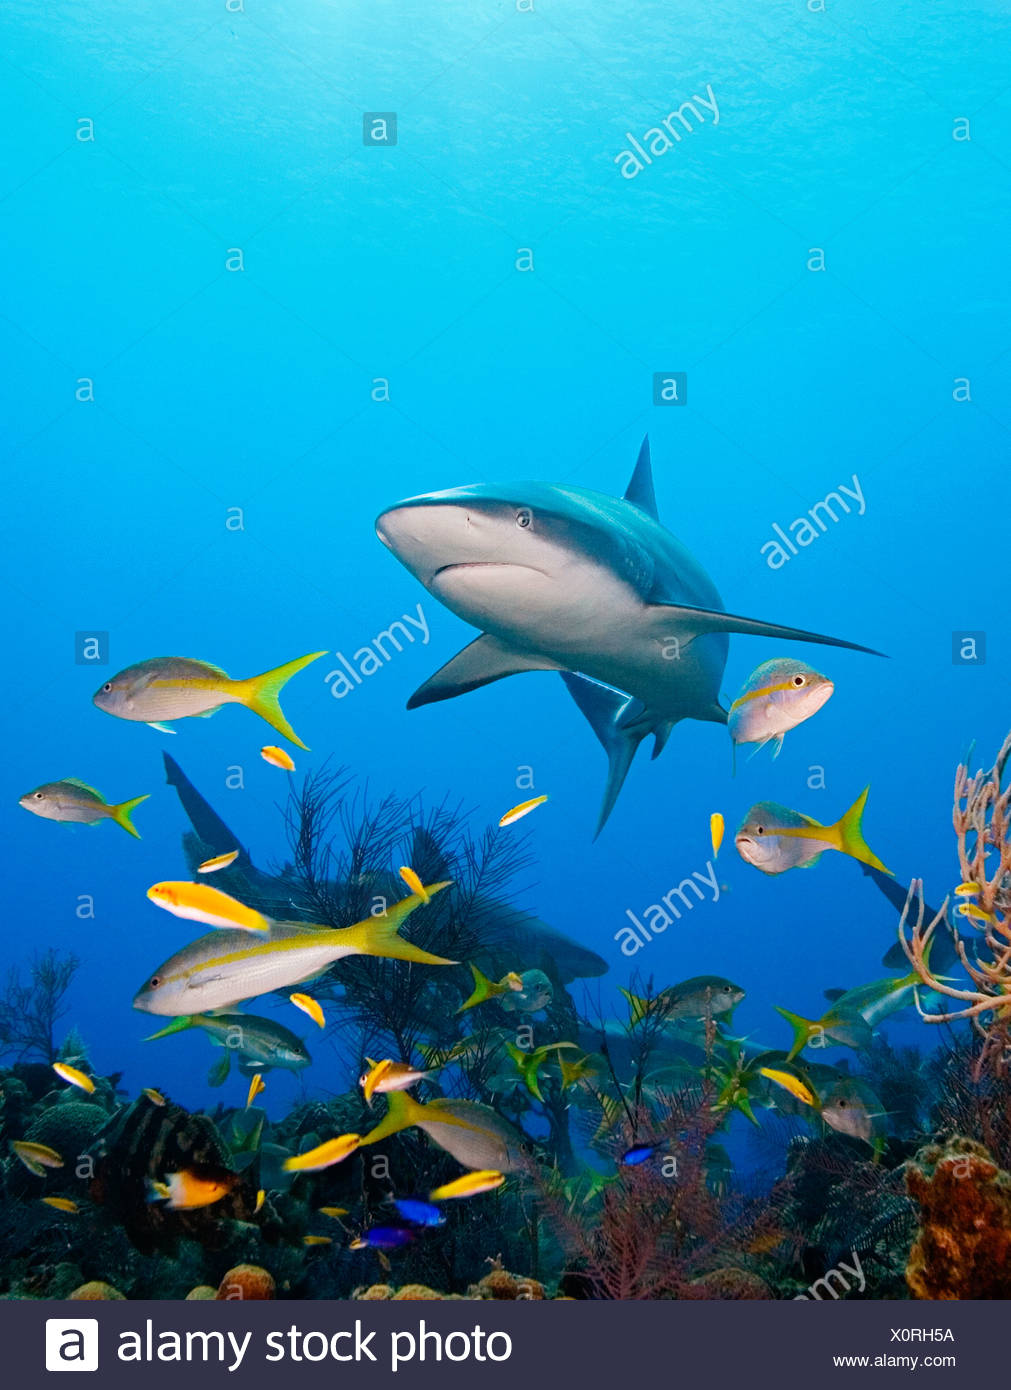 Caribbean Reef Sharks over coral reef Carcharhinus perezi West End Atlantic Ocean Bahamas USA - Stock Image